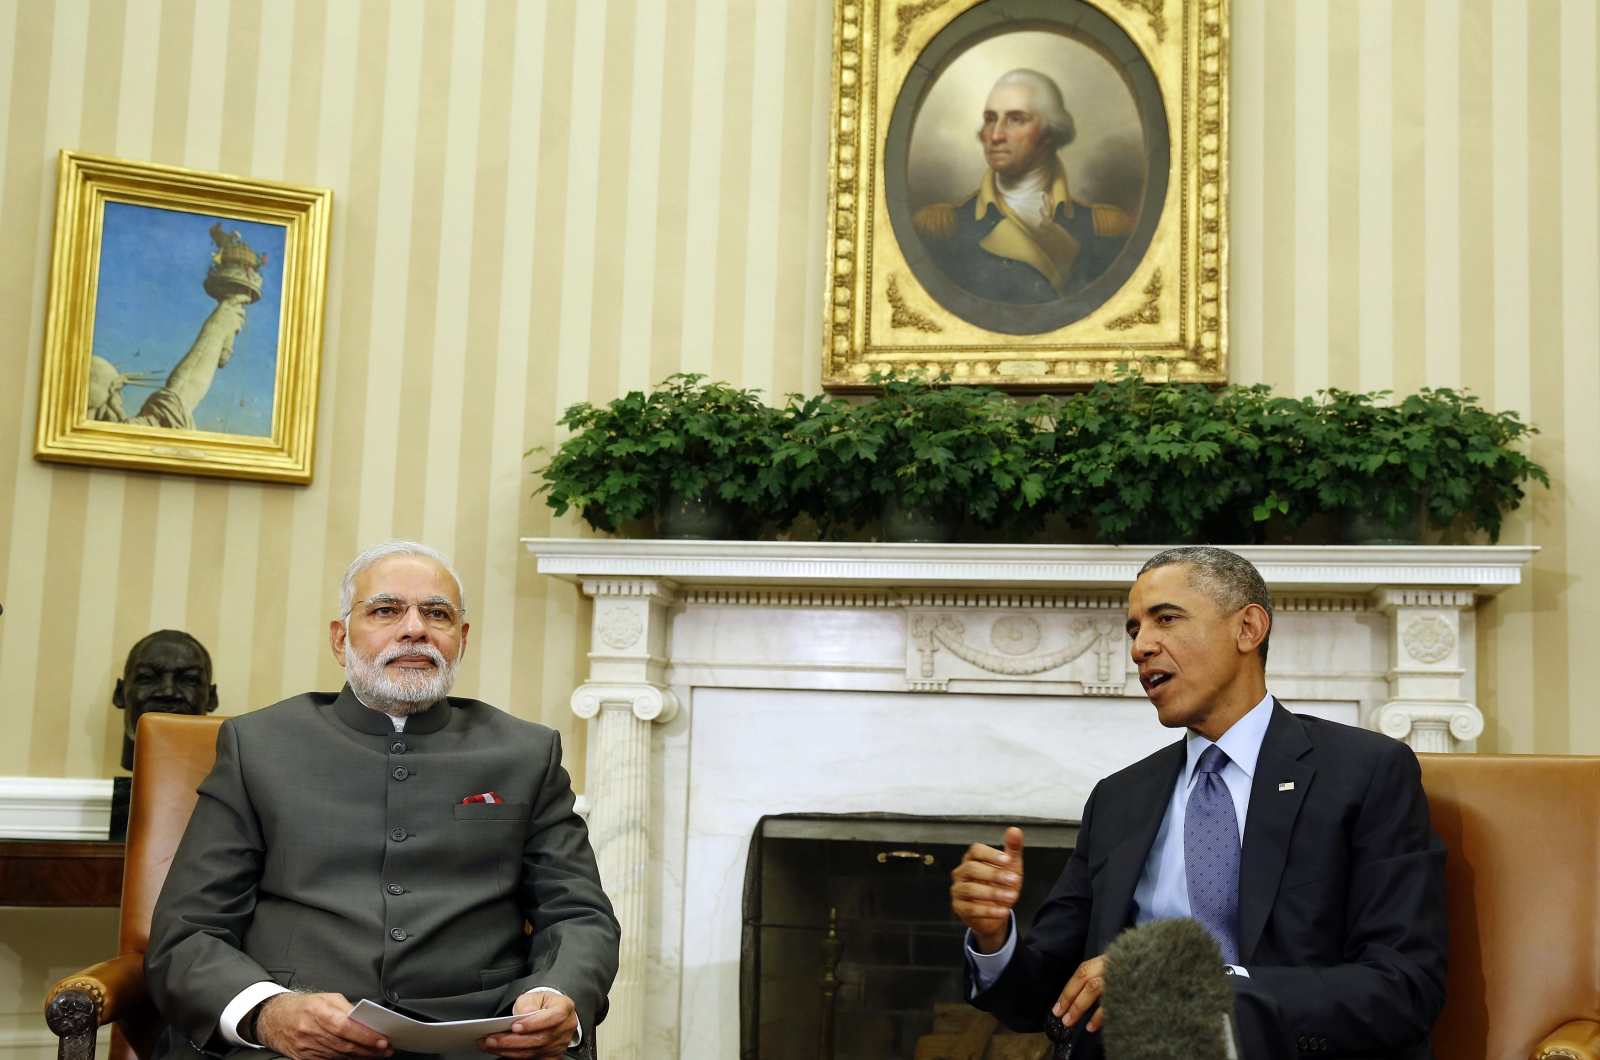 2014U.S. President Barack Obama talks next to India's Prime Minister Narendra Modi in the Oval Office of the White House in Washington, September 30, 2014